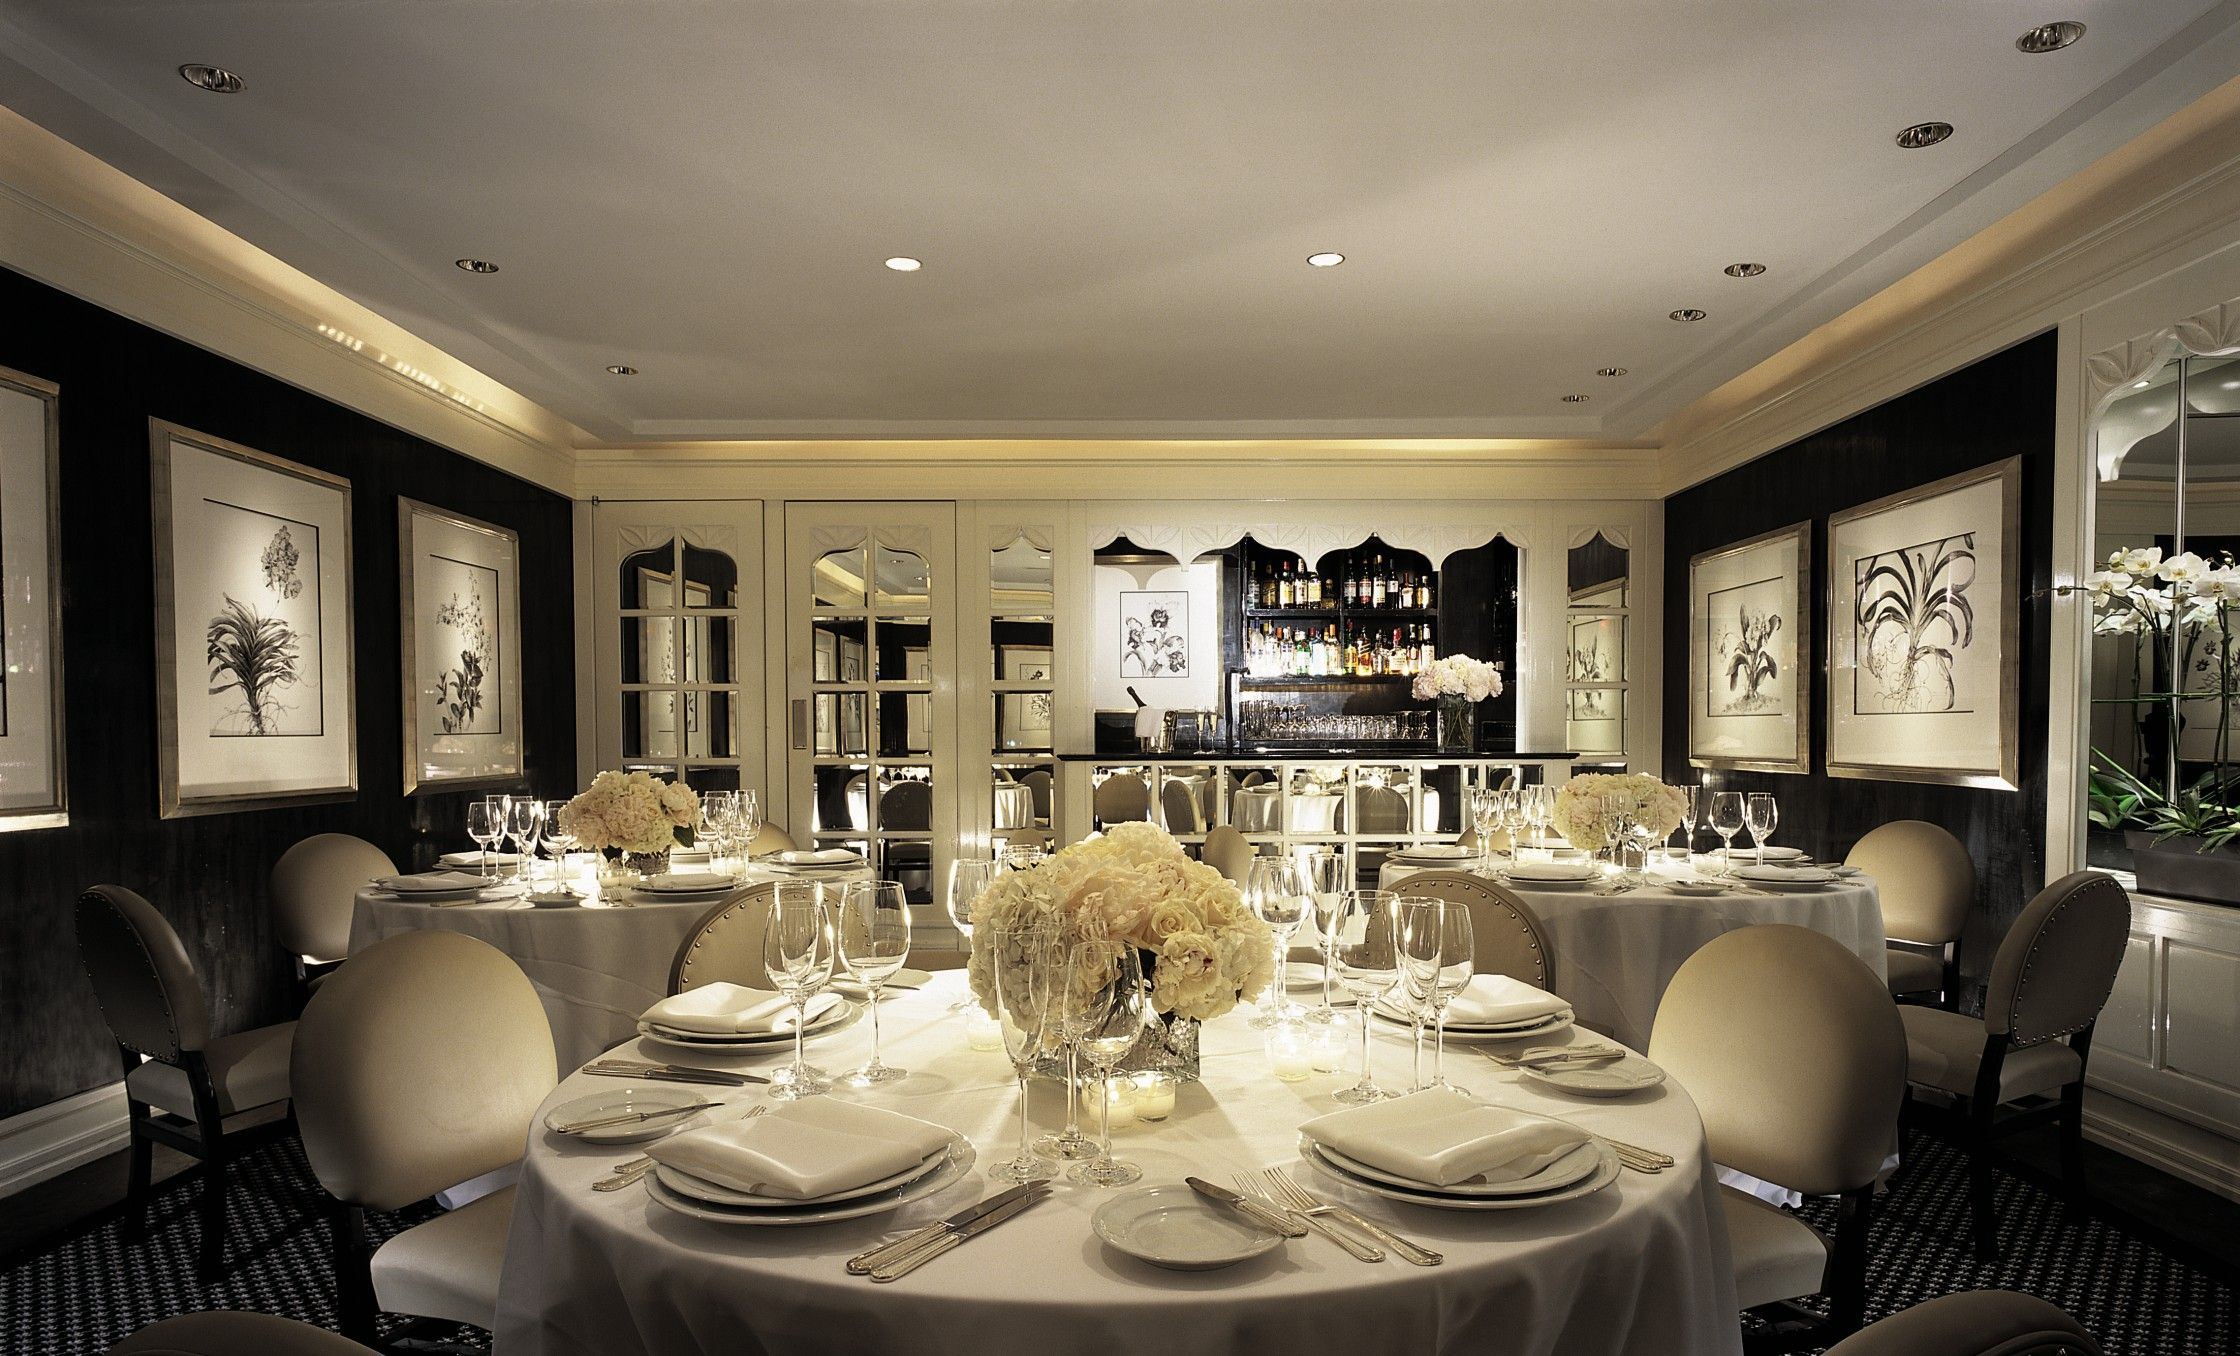 Celebrate Your Love In New York With An Engagement Party Or Captivating Best Private Dining Rooms Nyc Decorating Inspiration